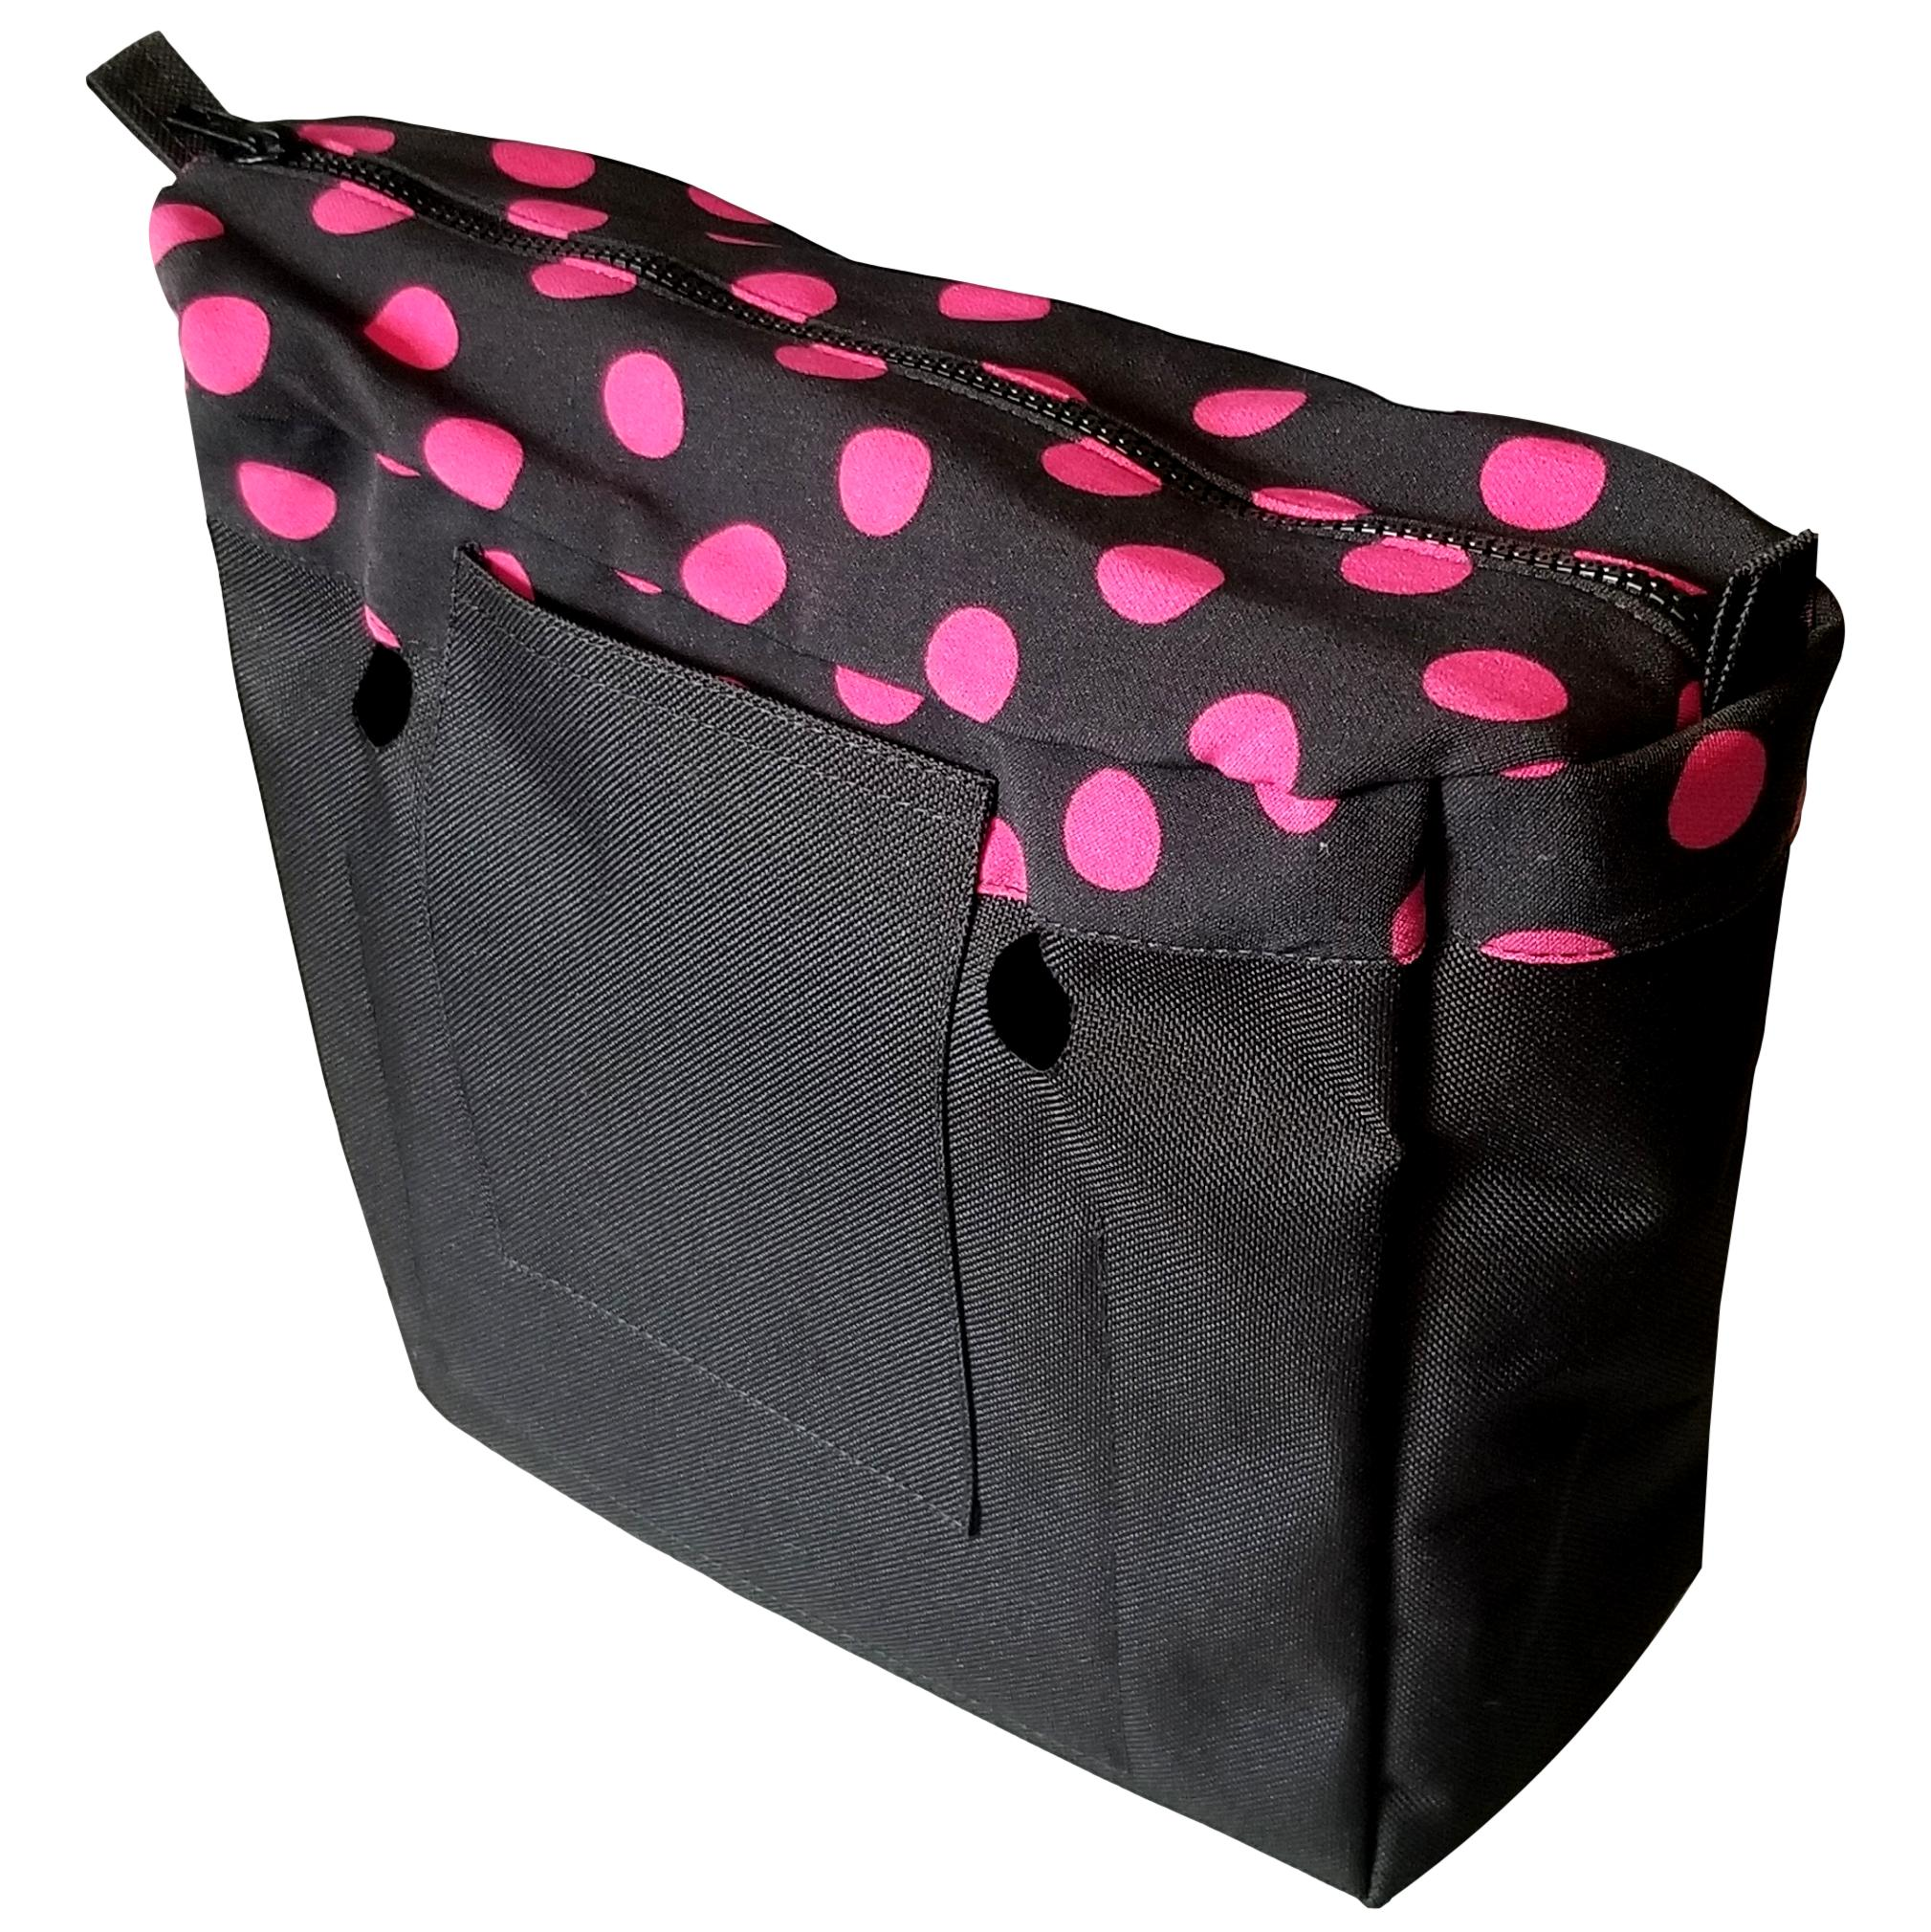 SLO Fashion Black with Pink Polka Dots Designer Insert